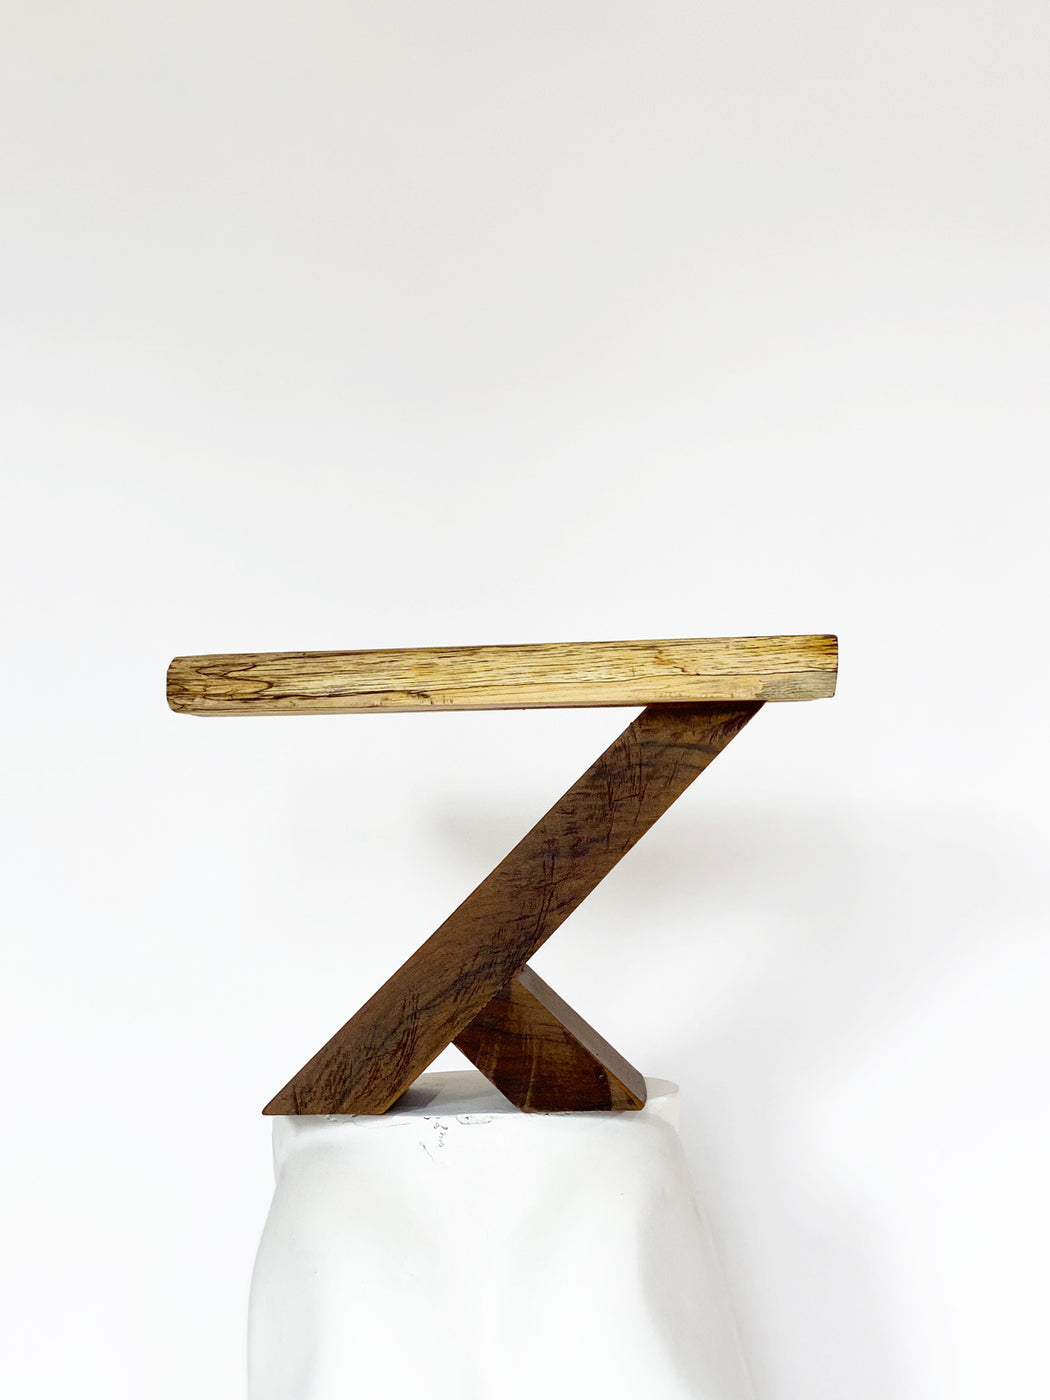 Spalted Low Table Sri Lanka by Tucker Robbins